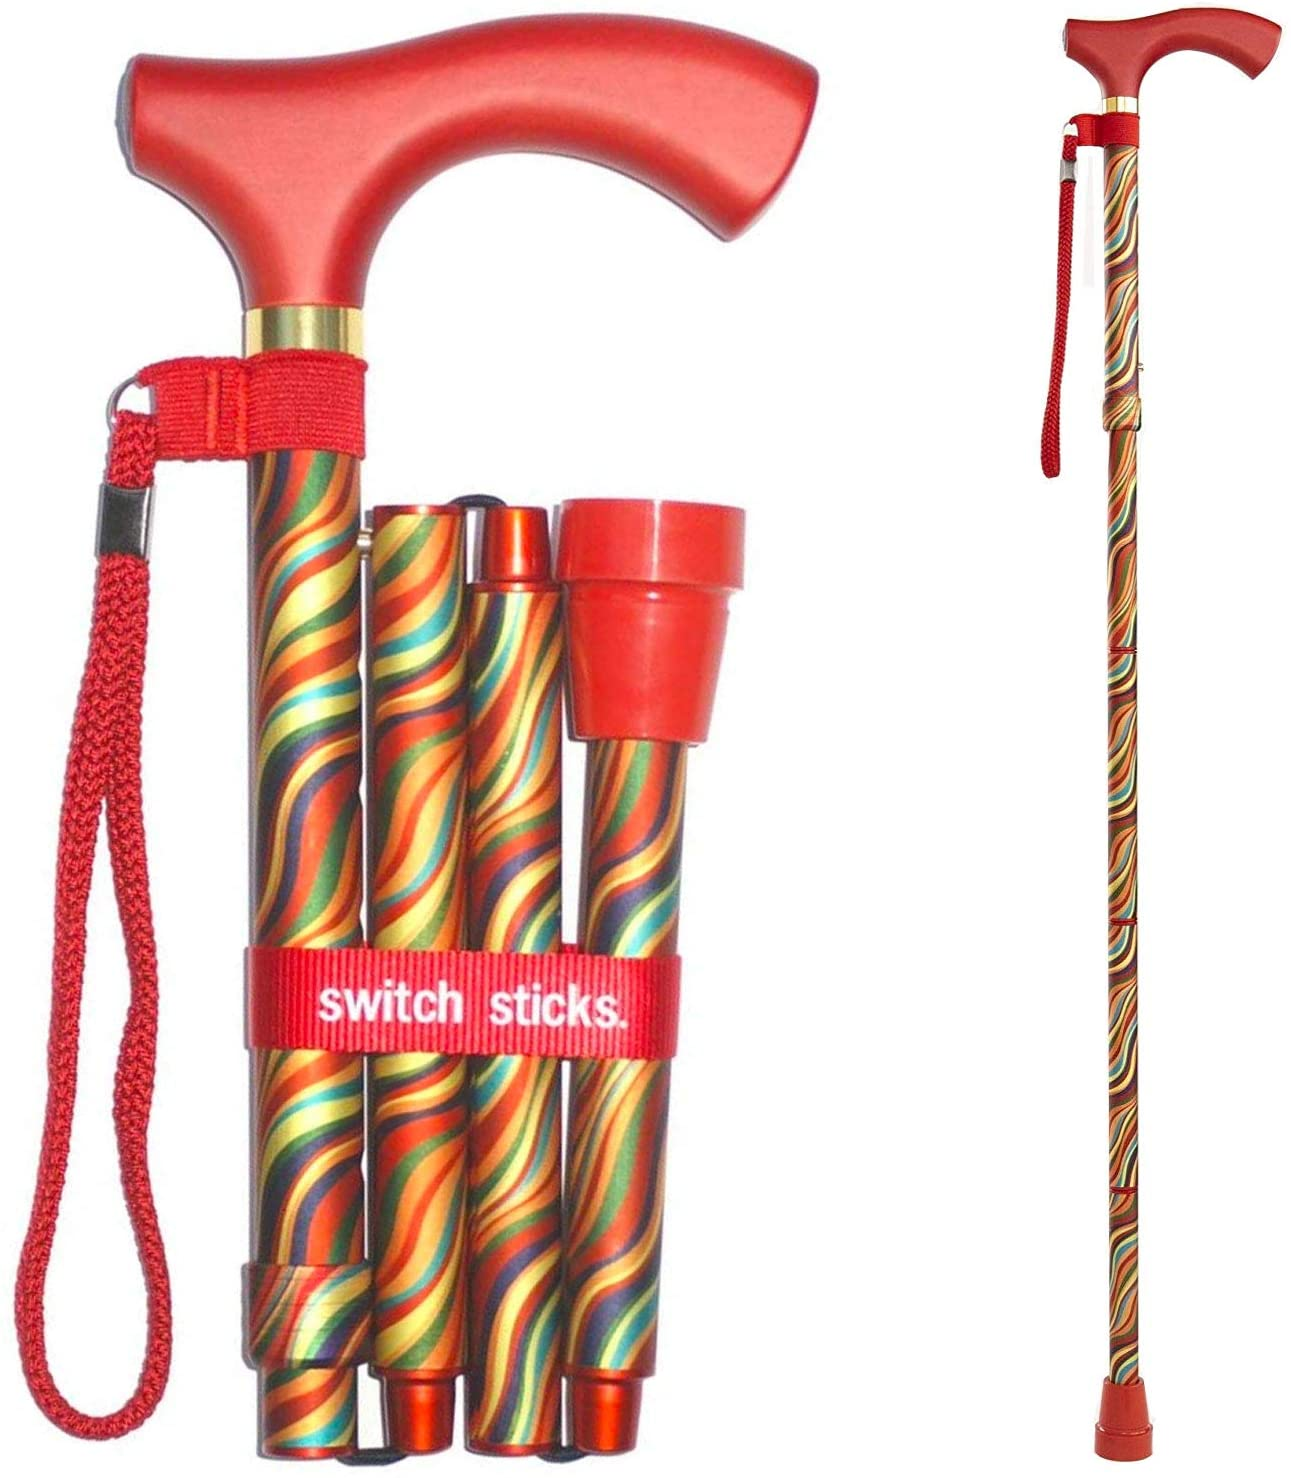 Switch Sticks Aluminum Adjustable Folding Cane and Walking Stick collapses and adjusts from 32 to 37 inches, Carnival